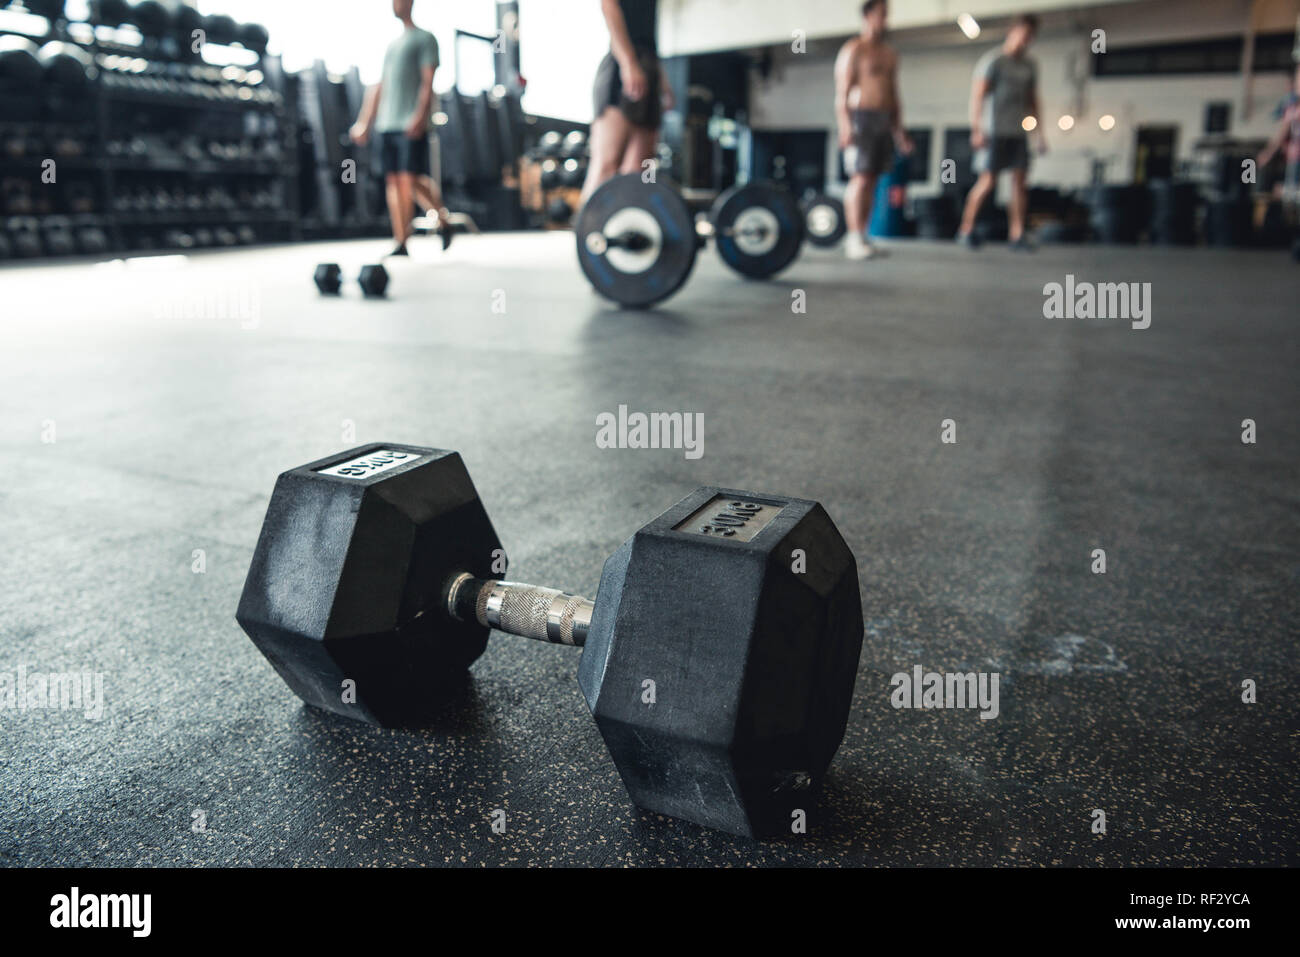 Authentic photos of men and women working out in gym setting. Gym equipment being used. - Stock Image